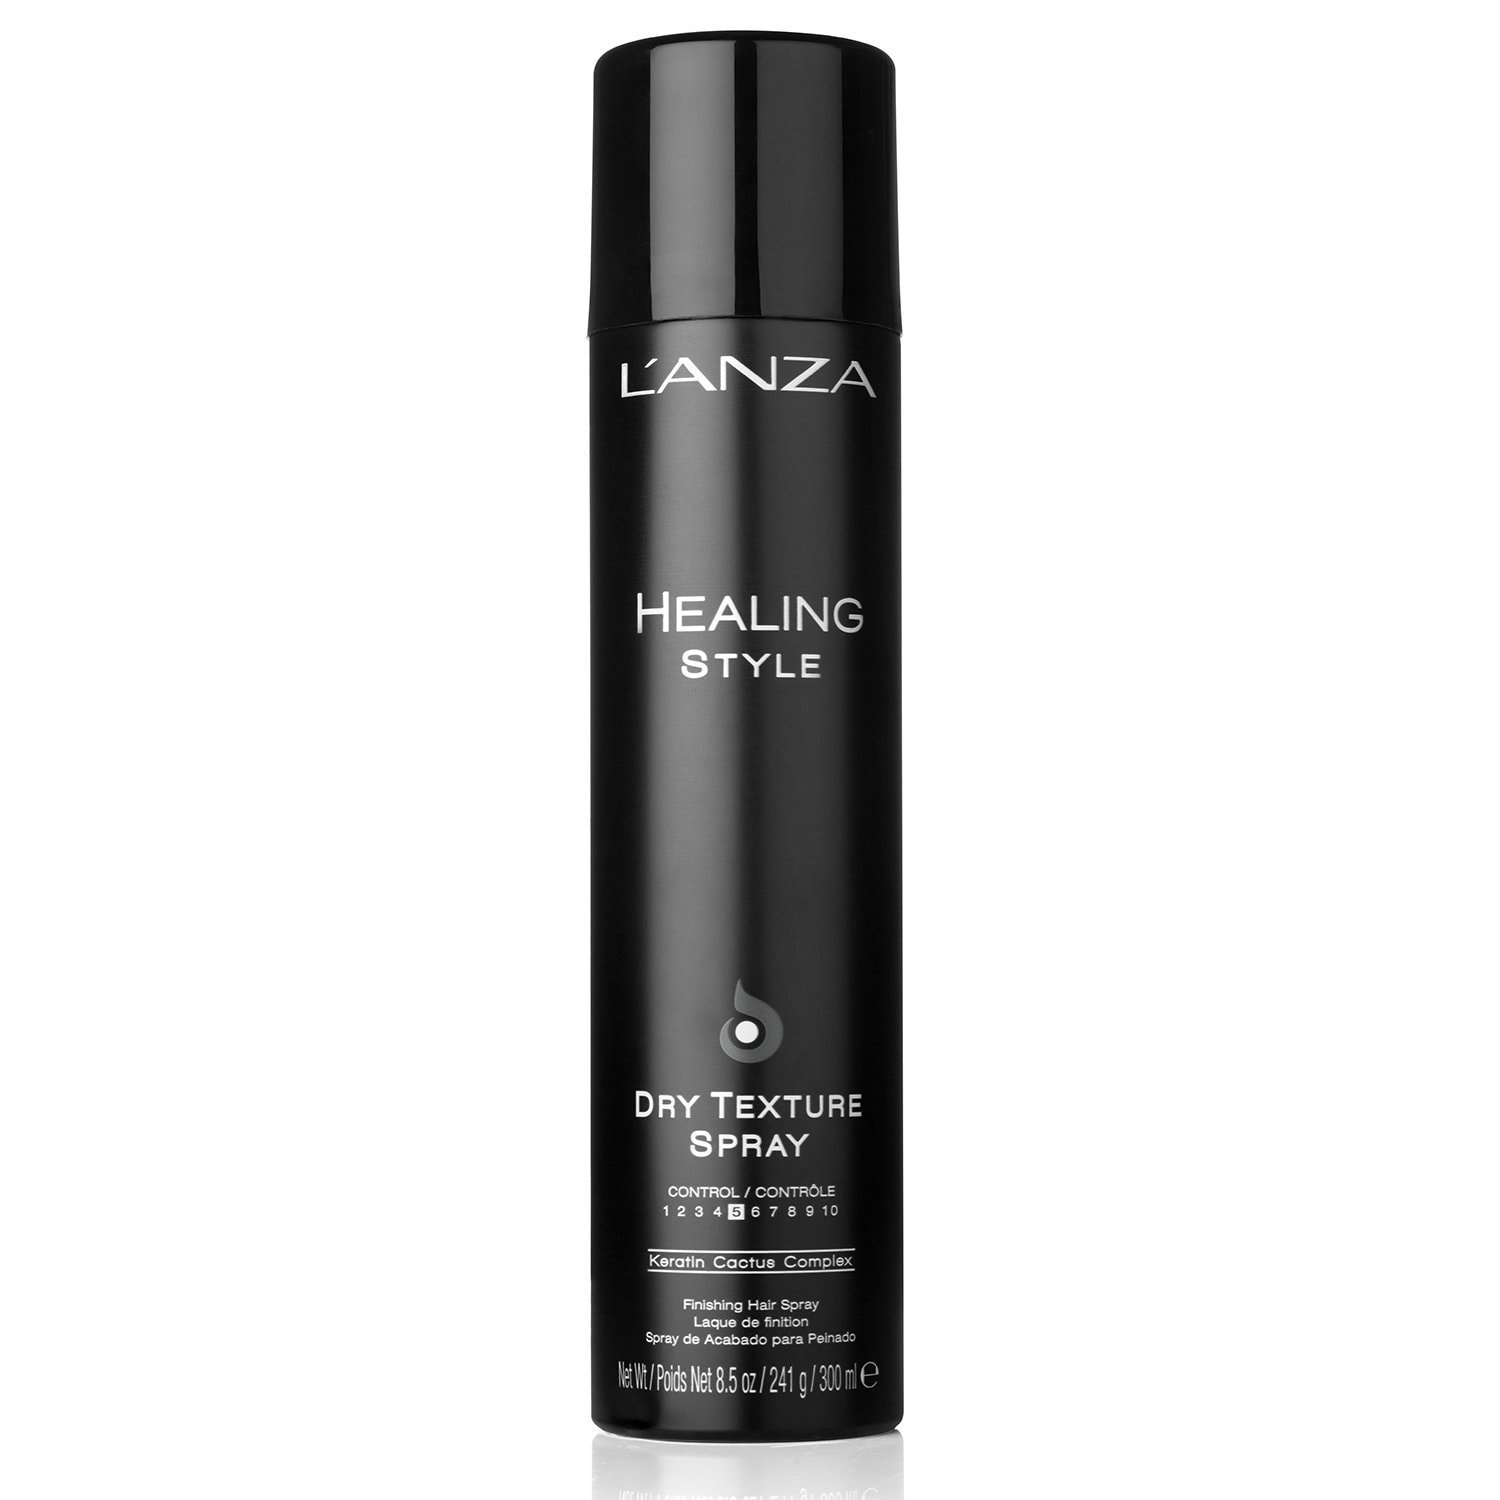 L'anza Healing Style Dry Texture 8.5-ounce Spray